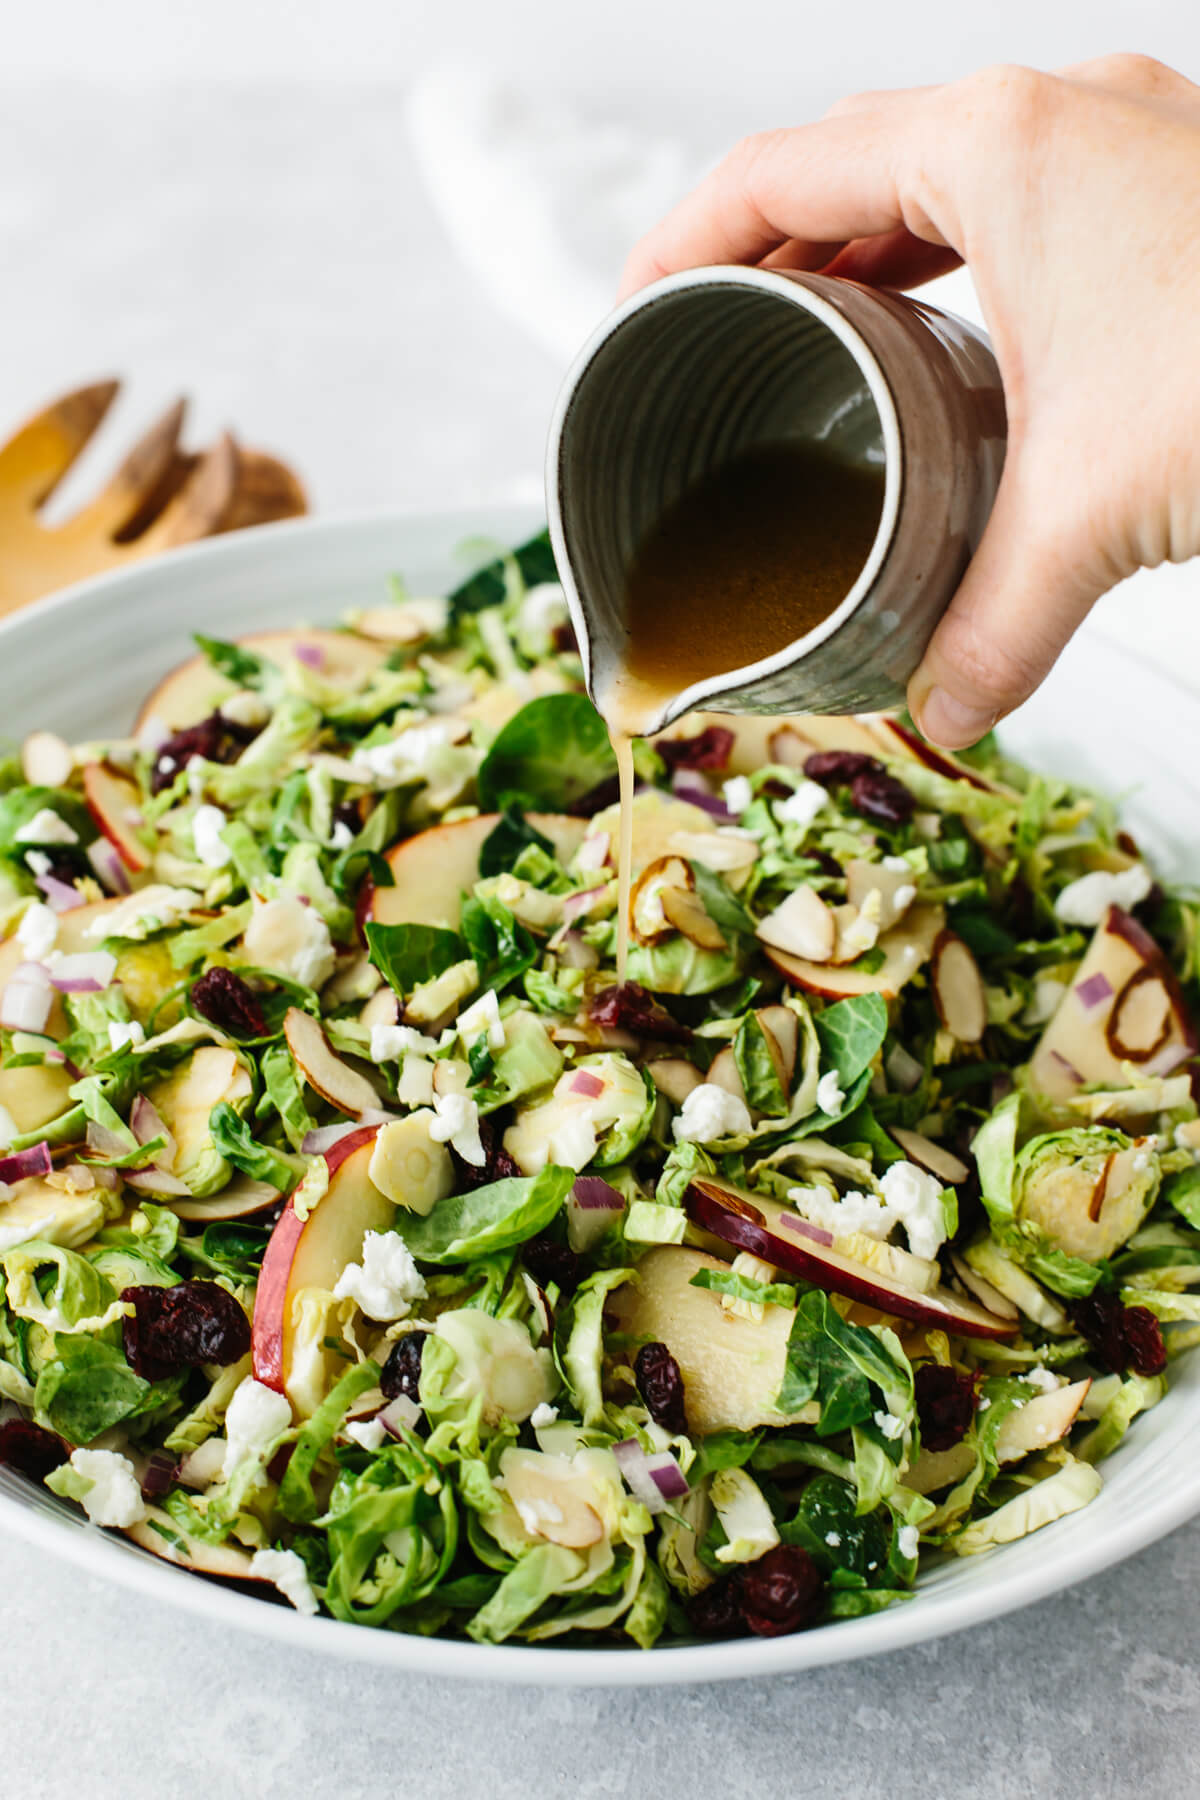 A bowl of a shaved Brussels sprouts salad